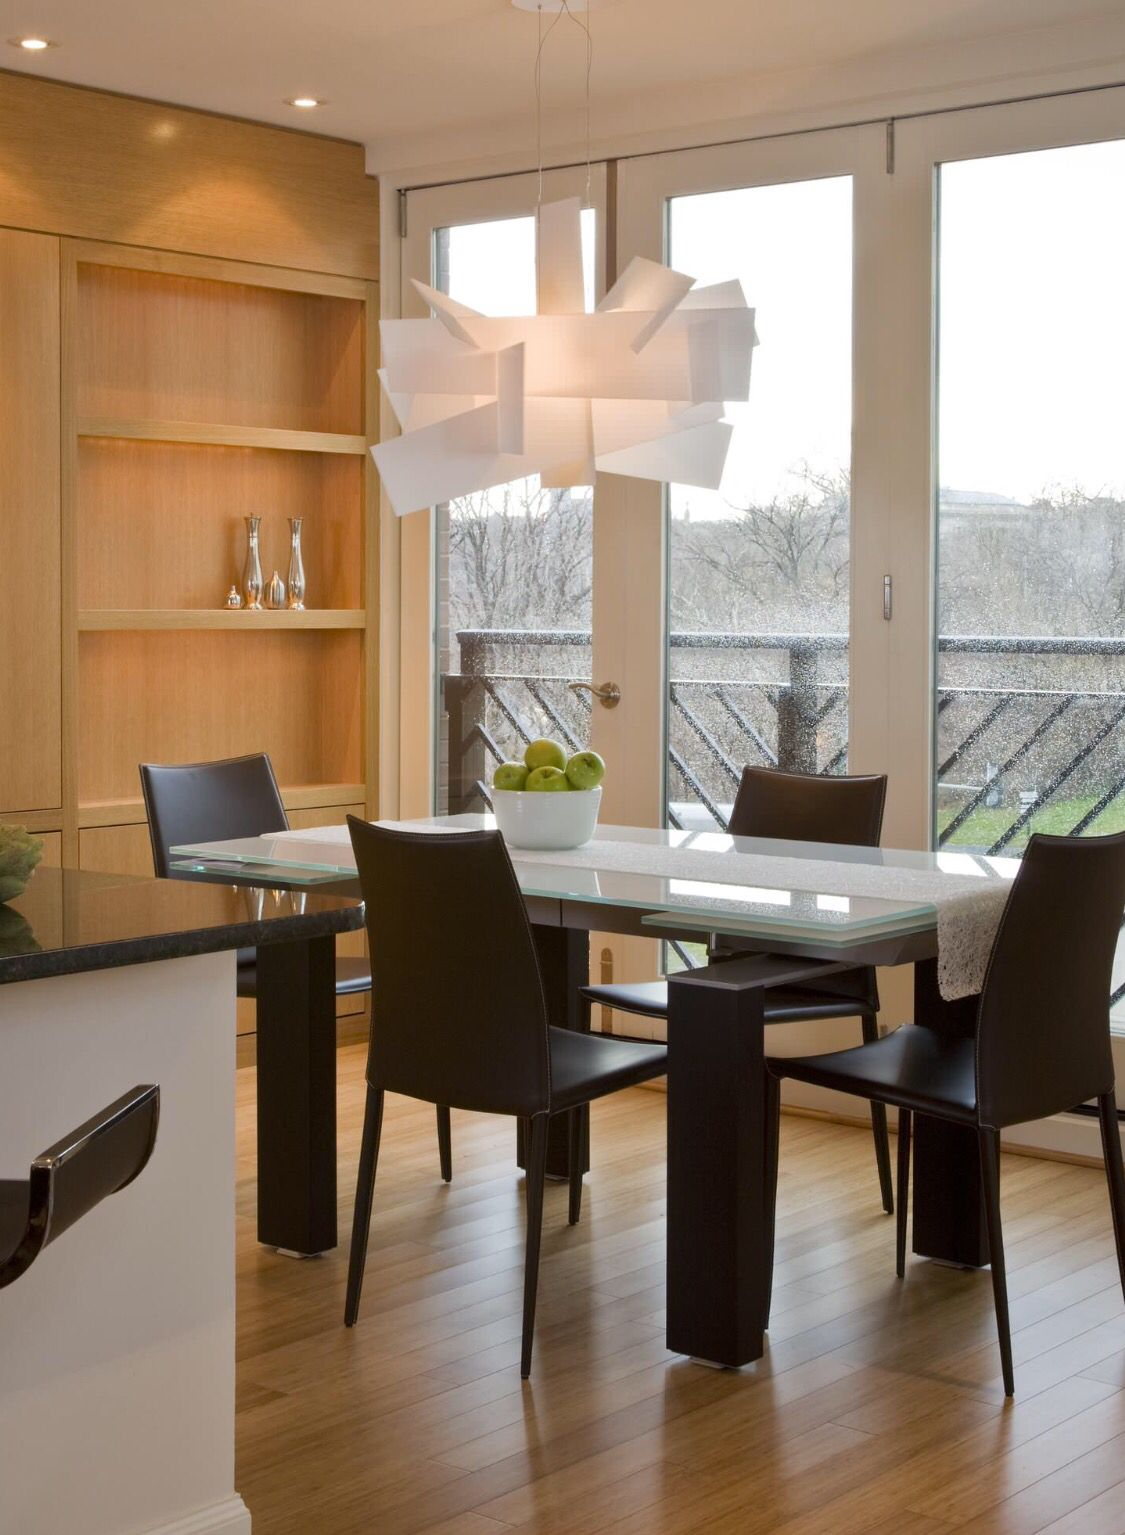 Dining Rooms From Houzz Com Modern Dining Room Modern Dining Room Lighting Modern Lighting Chandeliers Beautiful dining rooms houzz